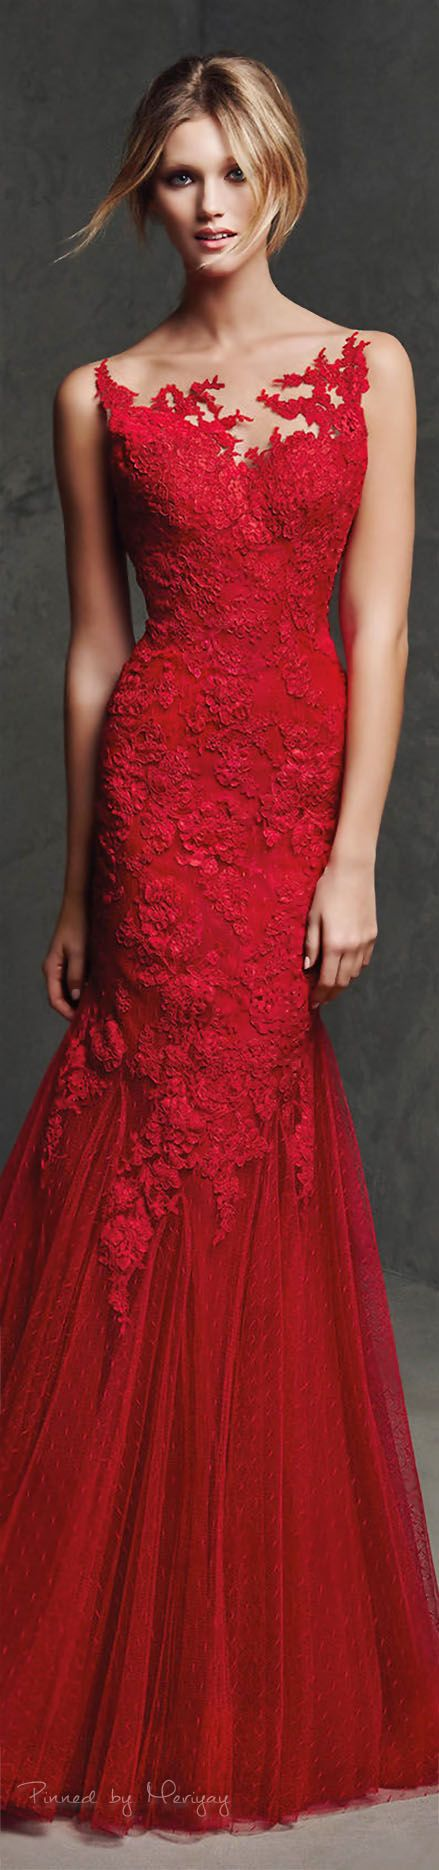 Pin by roress on women fashion ideas pinterest gowns prom and